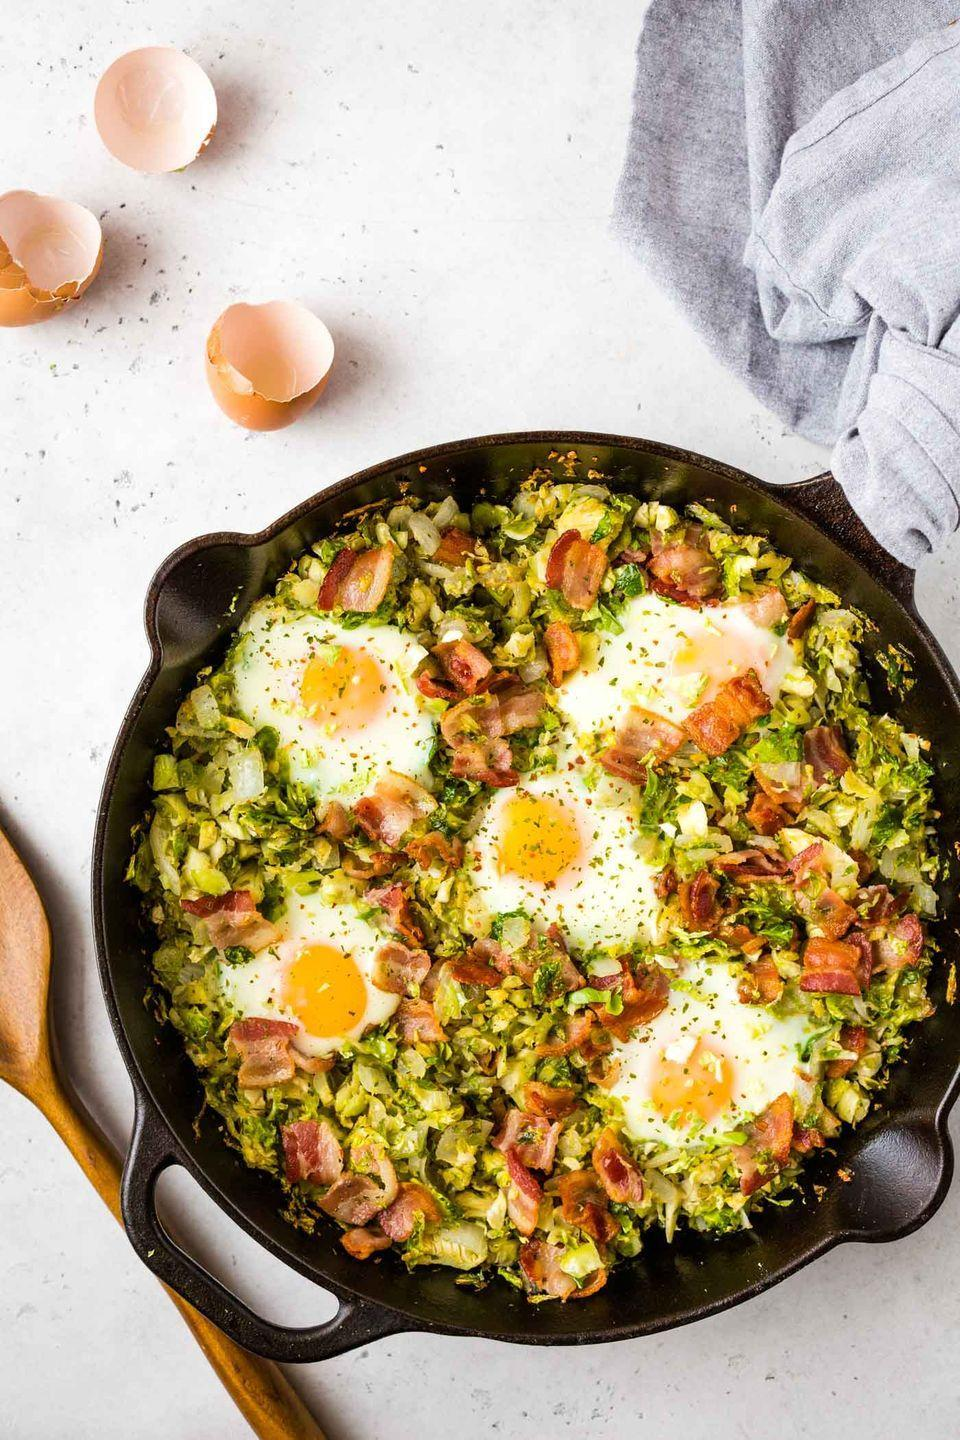 """<p>A healthy breakfast hash that includes bacon… yes, please! This carb-free recipe is loaded with protein and veggies. It will turn anyone into a Brussels sprouts fan.</p><p><strong>Get the recipe at <a href=""""https://thehealthyconsultant.com/brussels-sprouts-breakfast-hash-with-bacon/"""" rel=""""nofollow noopener"""" target=""""_blank"""" data-ylk=""""slk:The Healthy Consultant"""" class=""""link rapid-noclick-resp"""">The Healthy Consultant</a>.</strong></p><p><strong><a class=""""link rapid-noclick-resp"""" href=""""https://go.redirectingat.com?id=74968X1596630&url=https%3A%2F%2Fwww.walmart.com%2Fsearch%2F%3Fquery%3Dfood%2Bprocessor%26typeahead%3Dfood%2Bproce&sref=https%3A%2F%2Fwww.thepioneerwoman.com%2Ffood-cooking%2Fmeals-menus%2Fg34922086%2Fhealthy-breakfast-ideas%2F"""" rel=""""nofollow noopener"""" target=""""_blank"""" data-ylk=""""slk:SHOP FOOD PROCESSORS"""">SHOP FOOD PROCESSORS</a><br></strong></p>"""